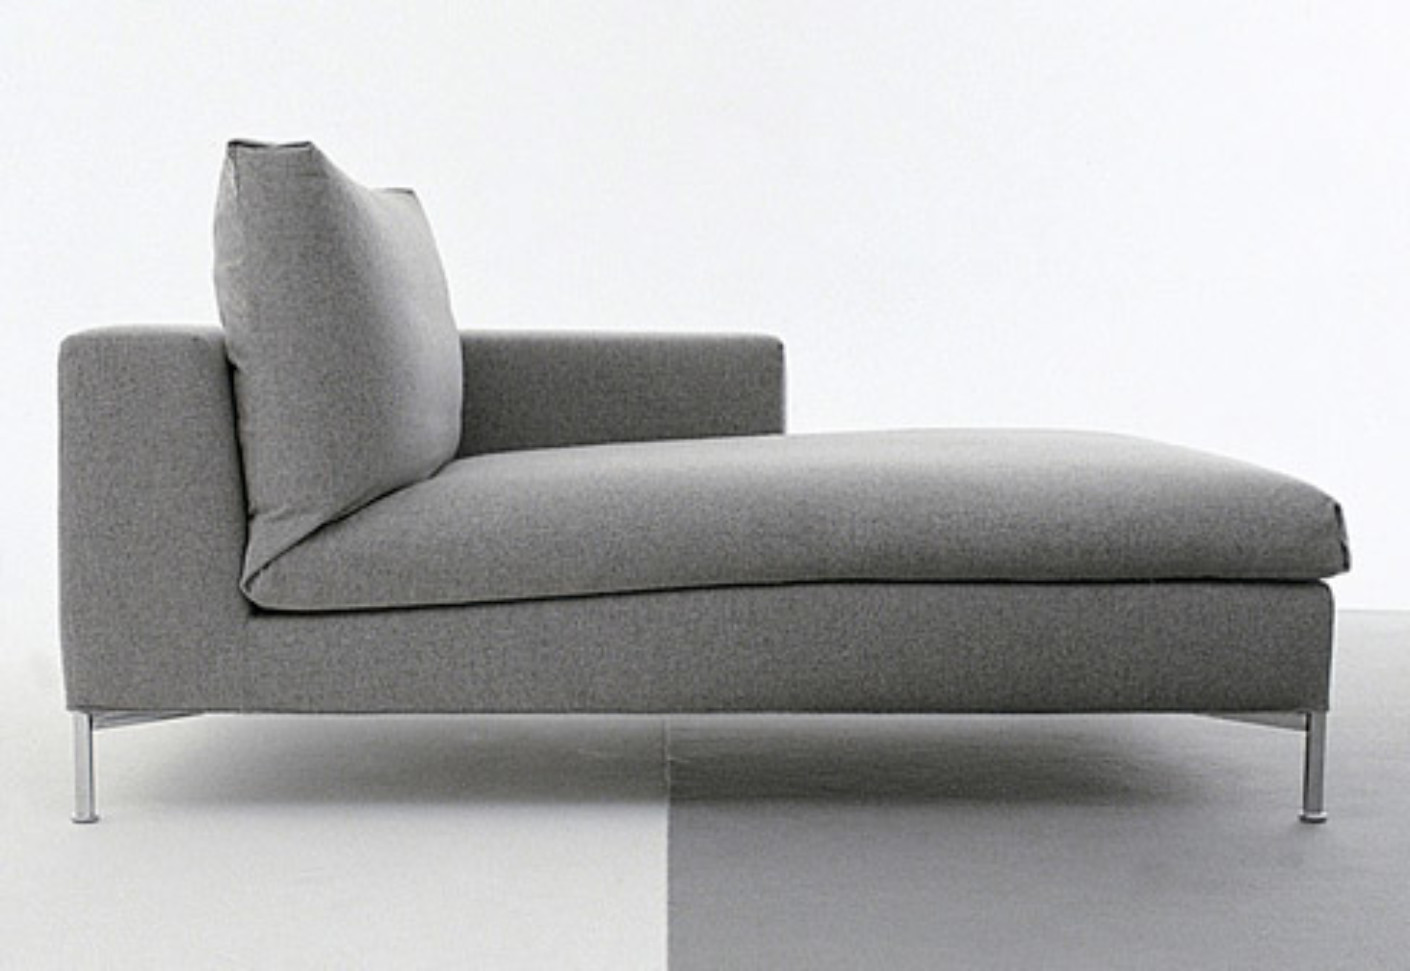 Table Coffee Sofa Chaise